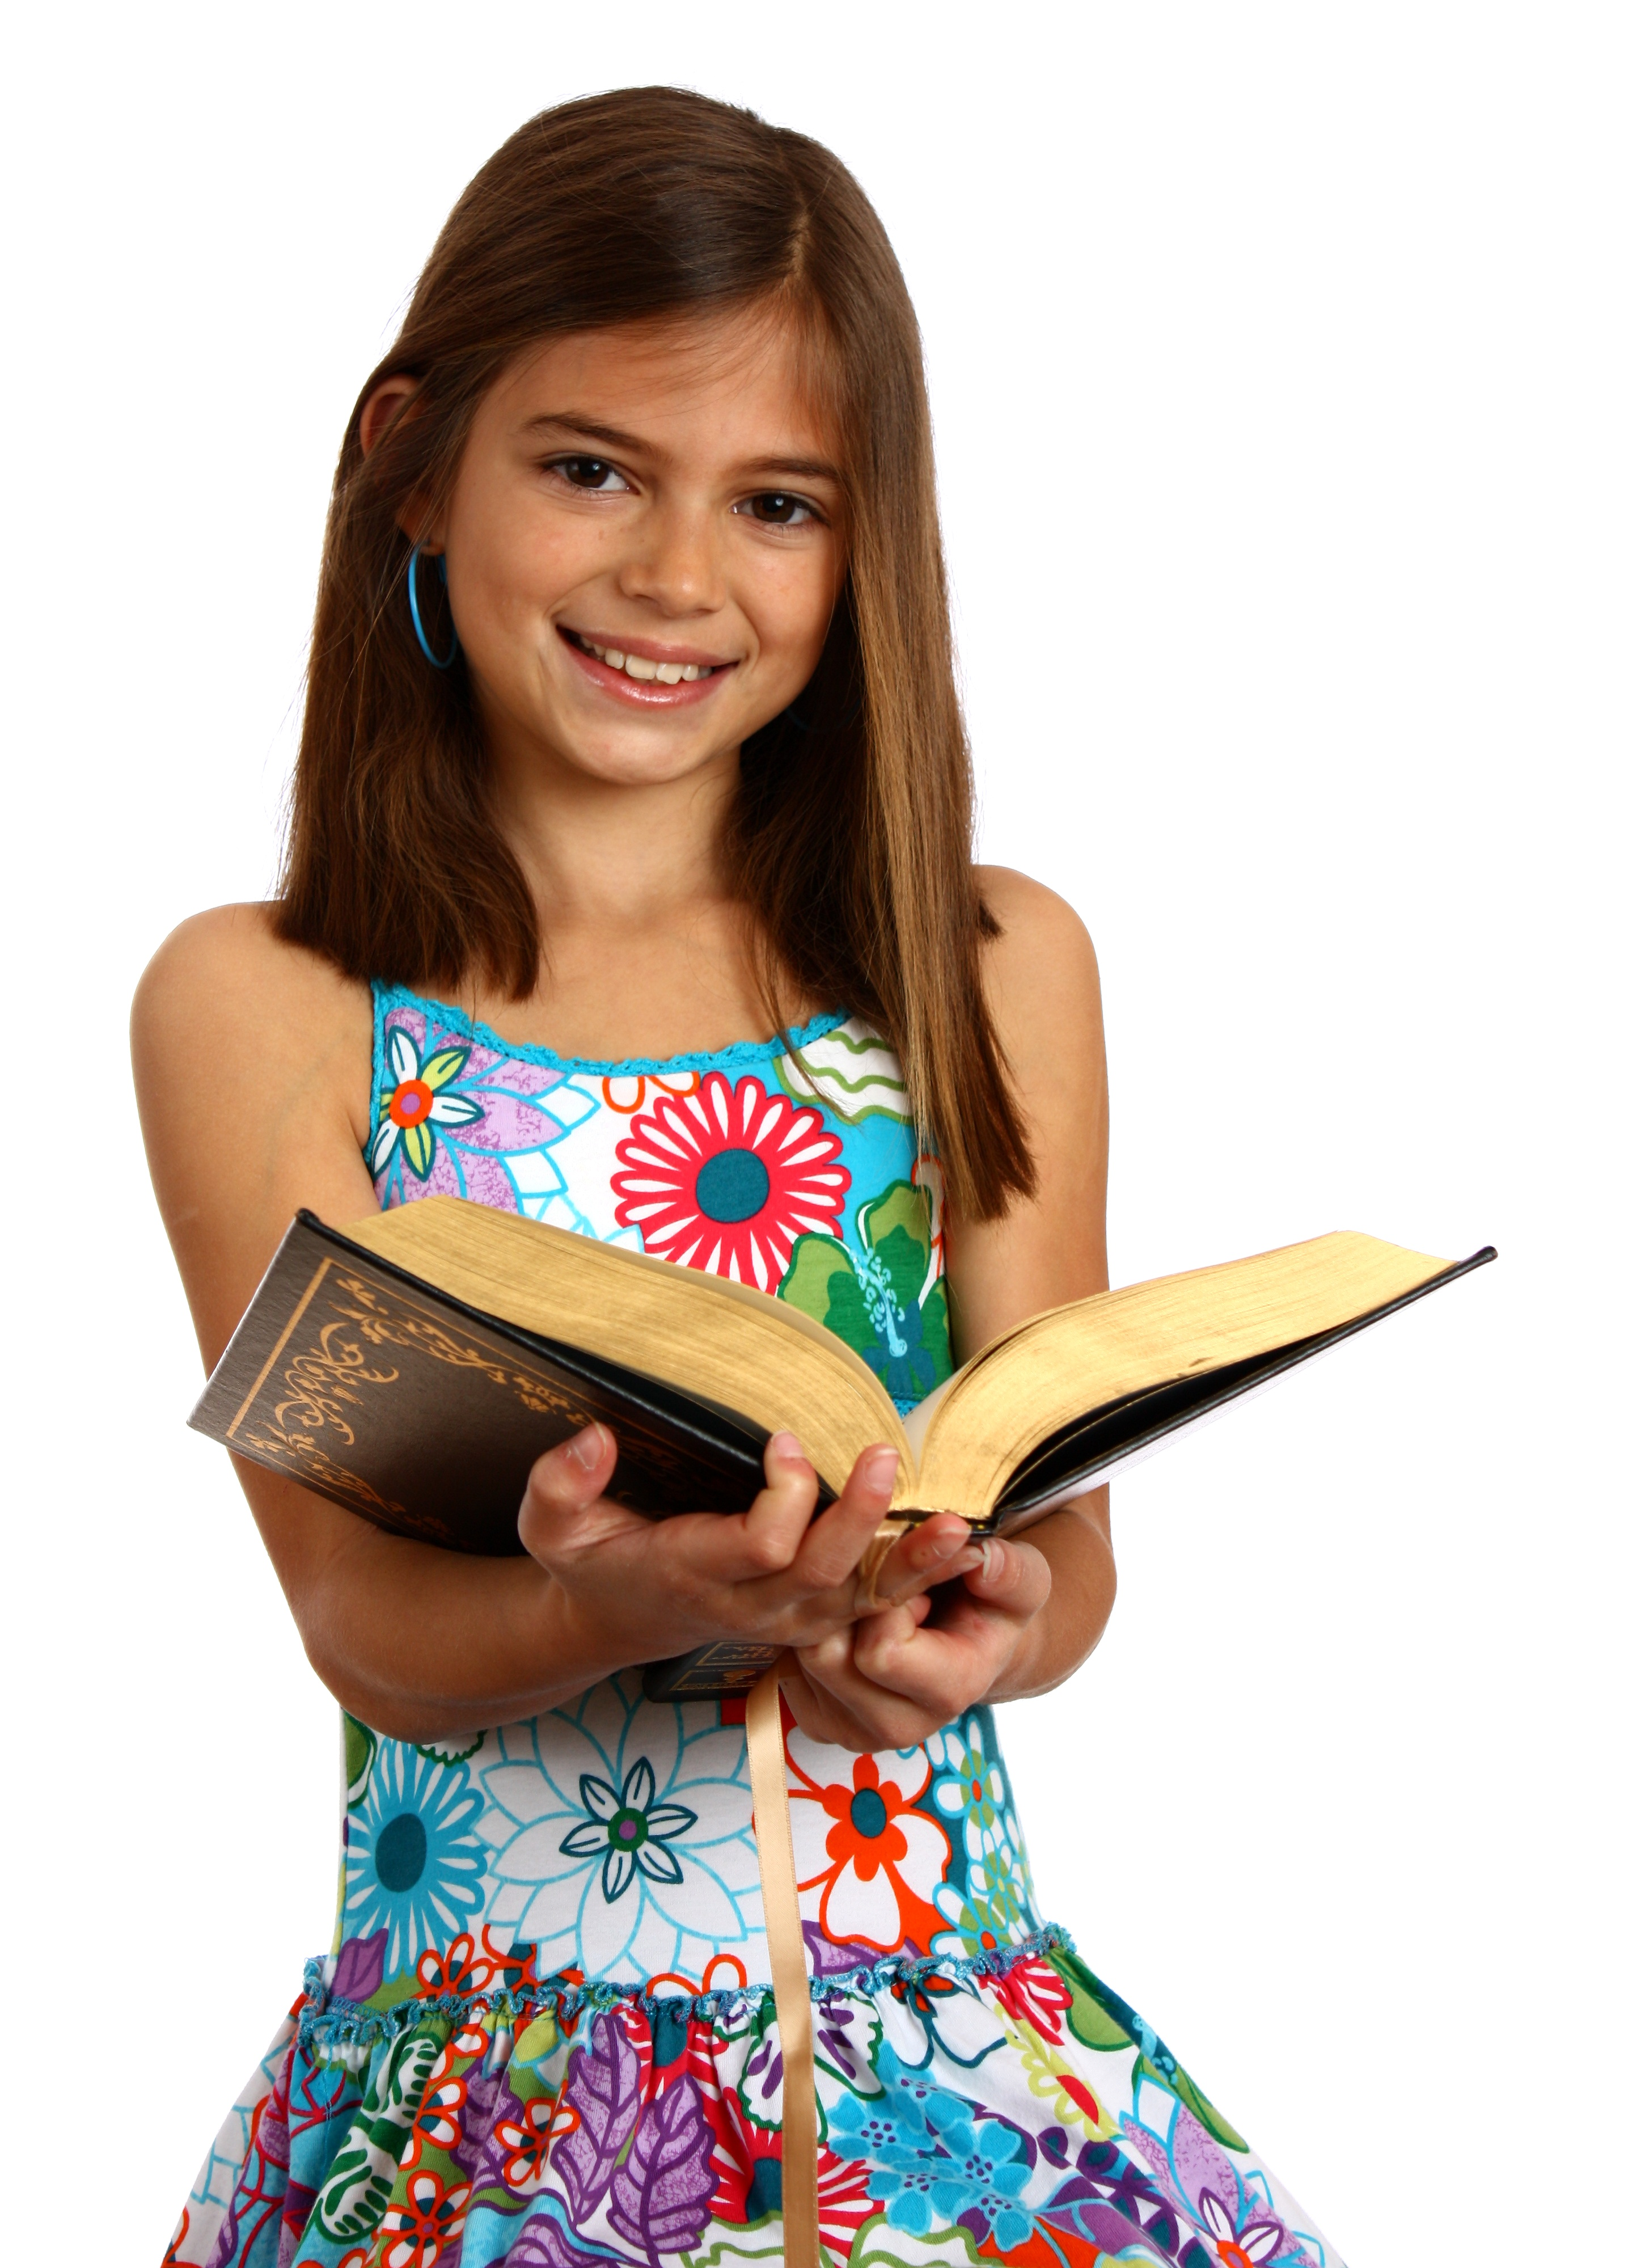 Free Photo A Pretty Young Girl Reading A Book Beautiful Learning School Free Download Jooinn